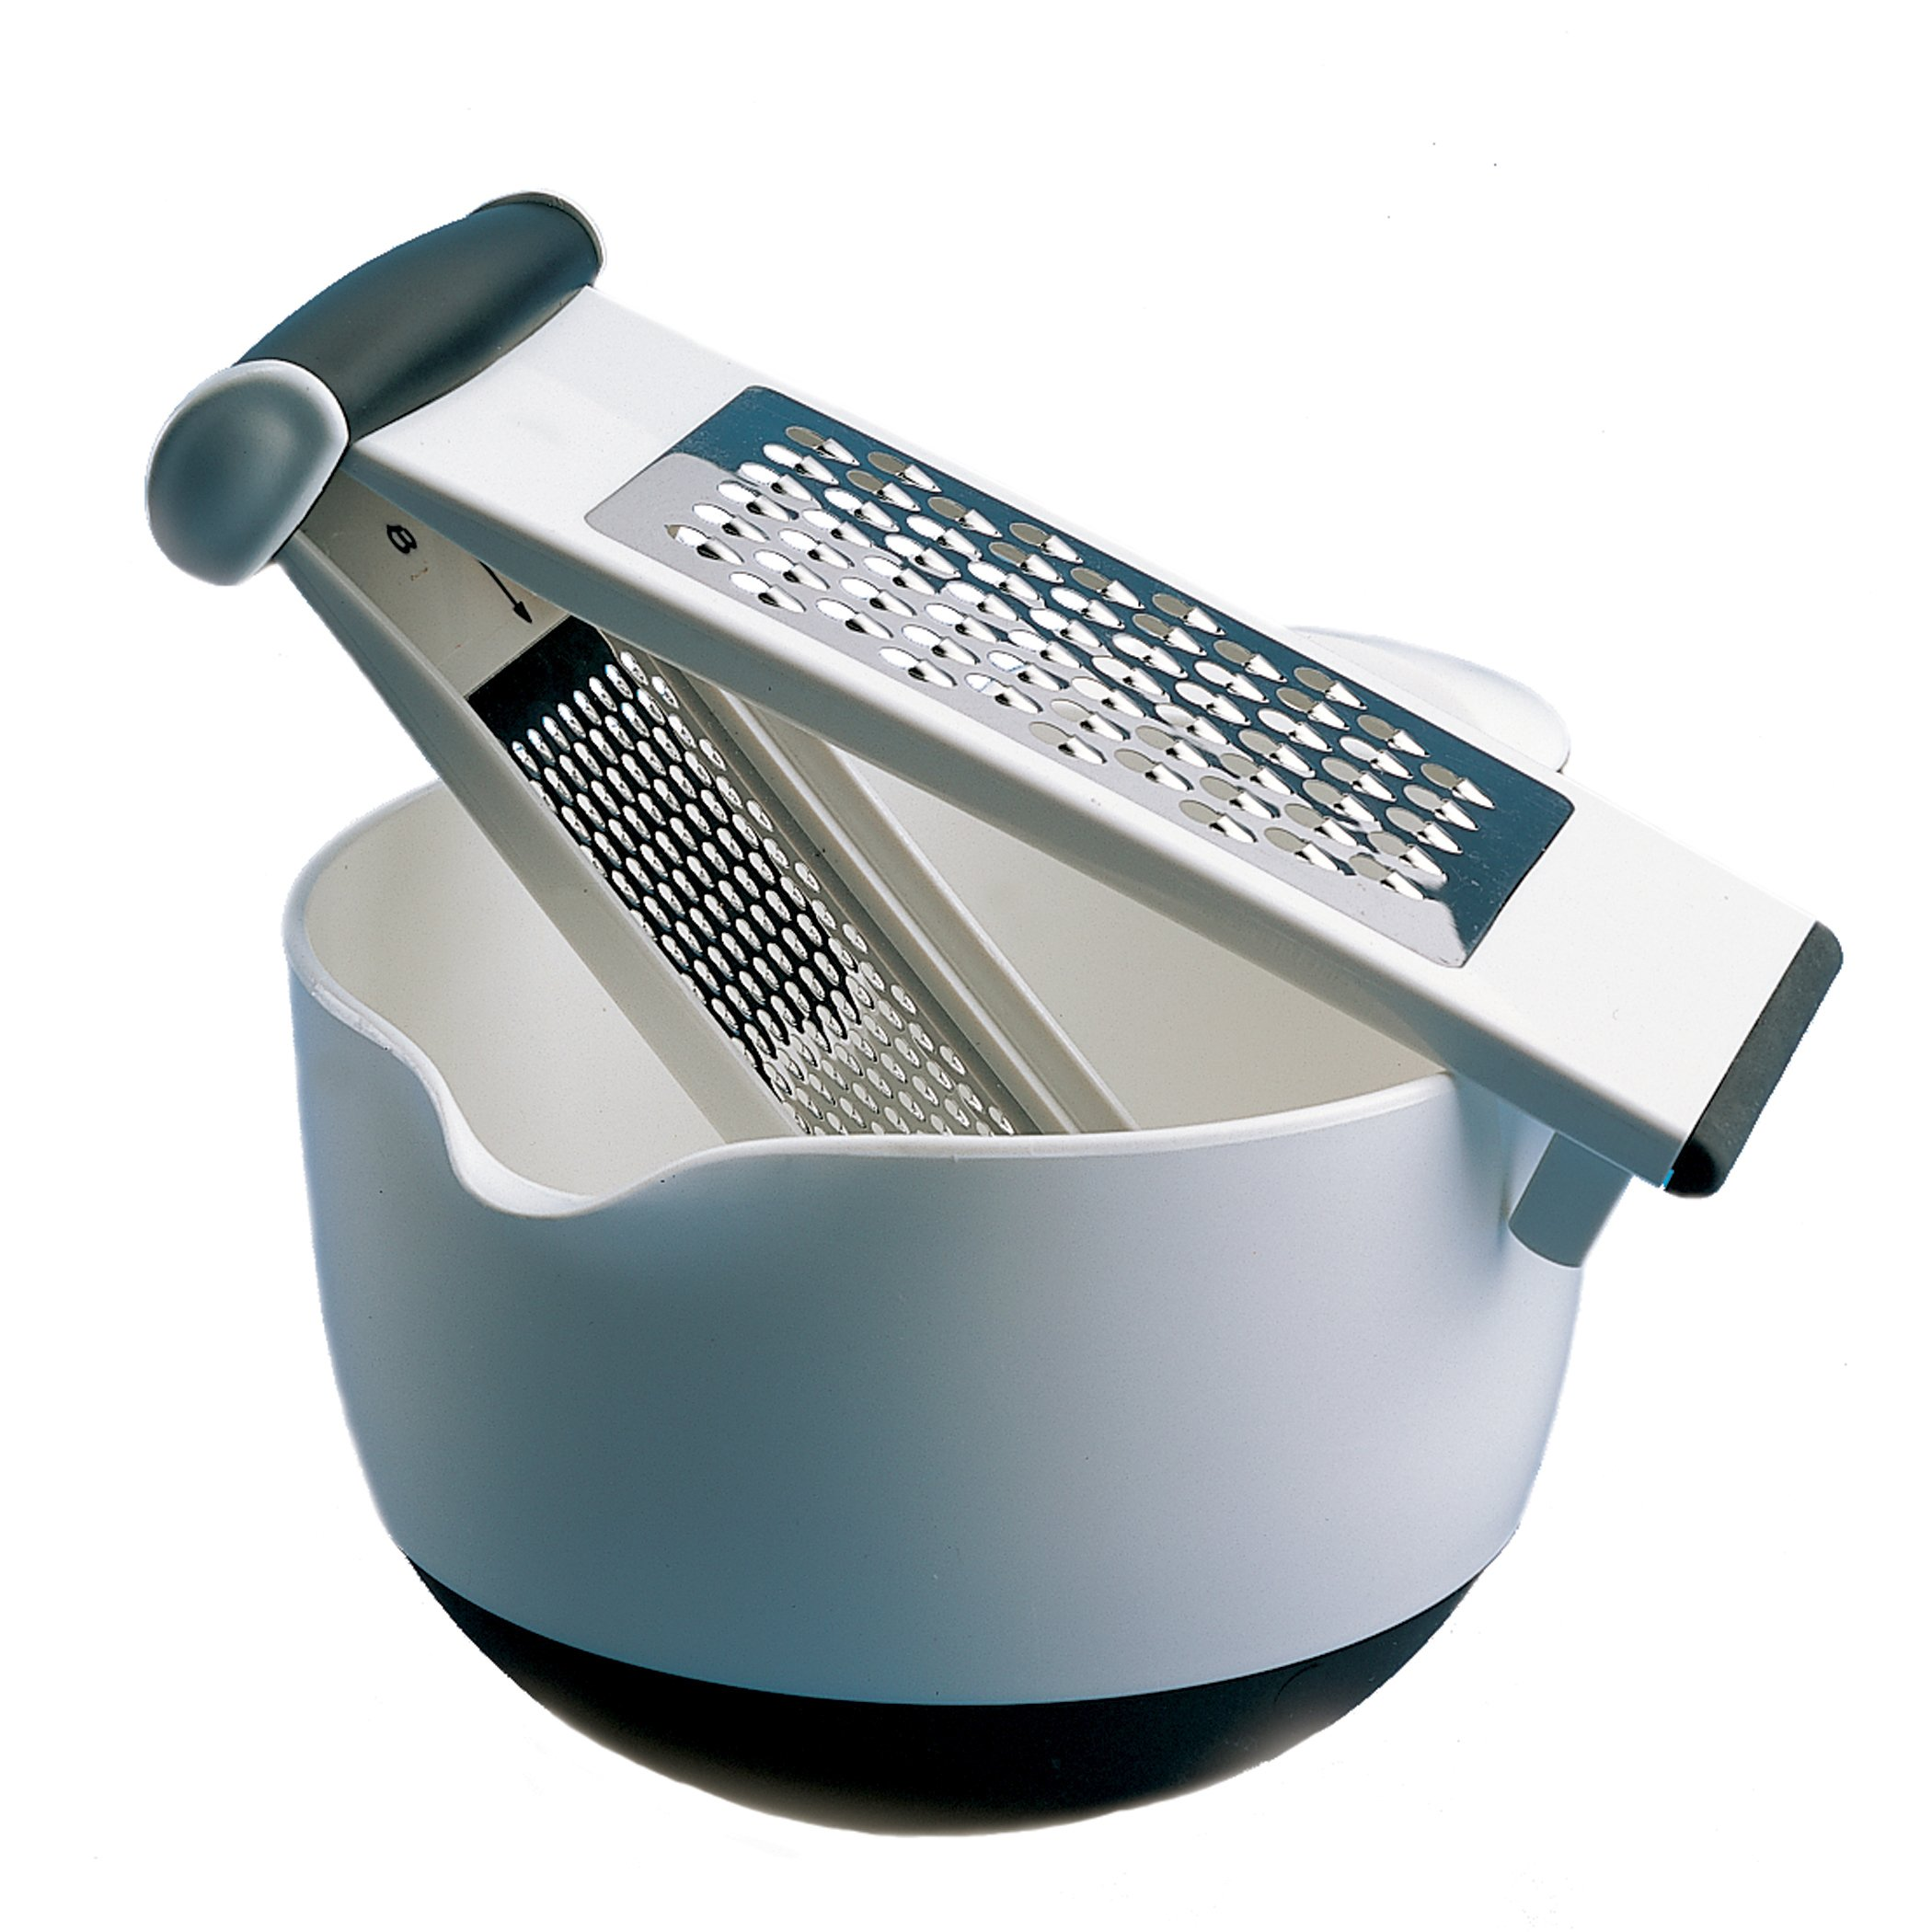 OXO Good Grips Multi Grater by OXO (Image #4)